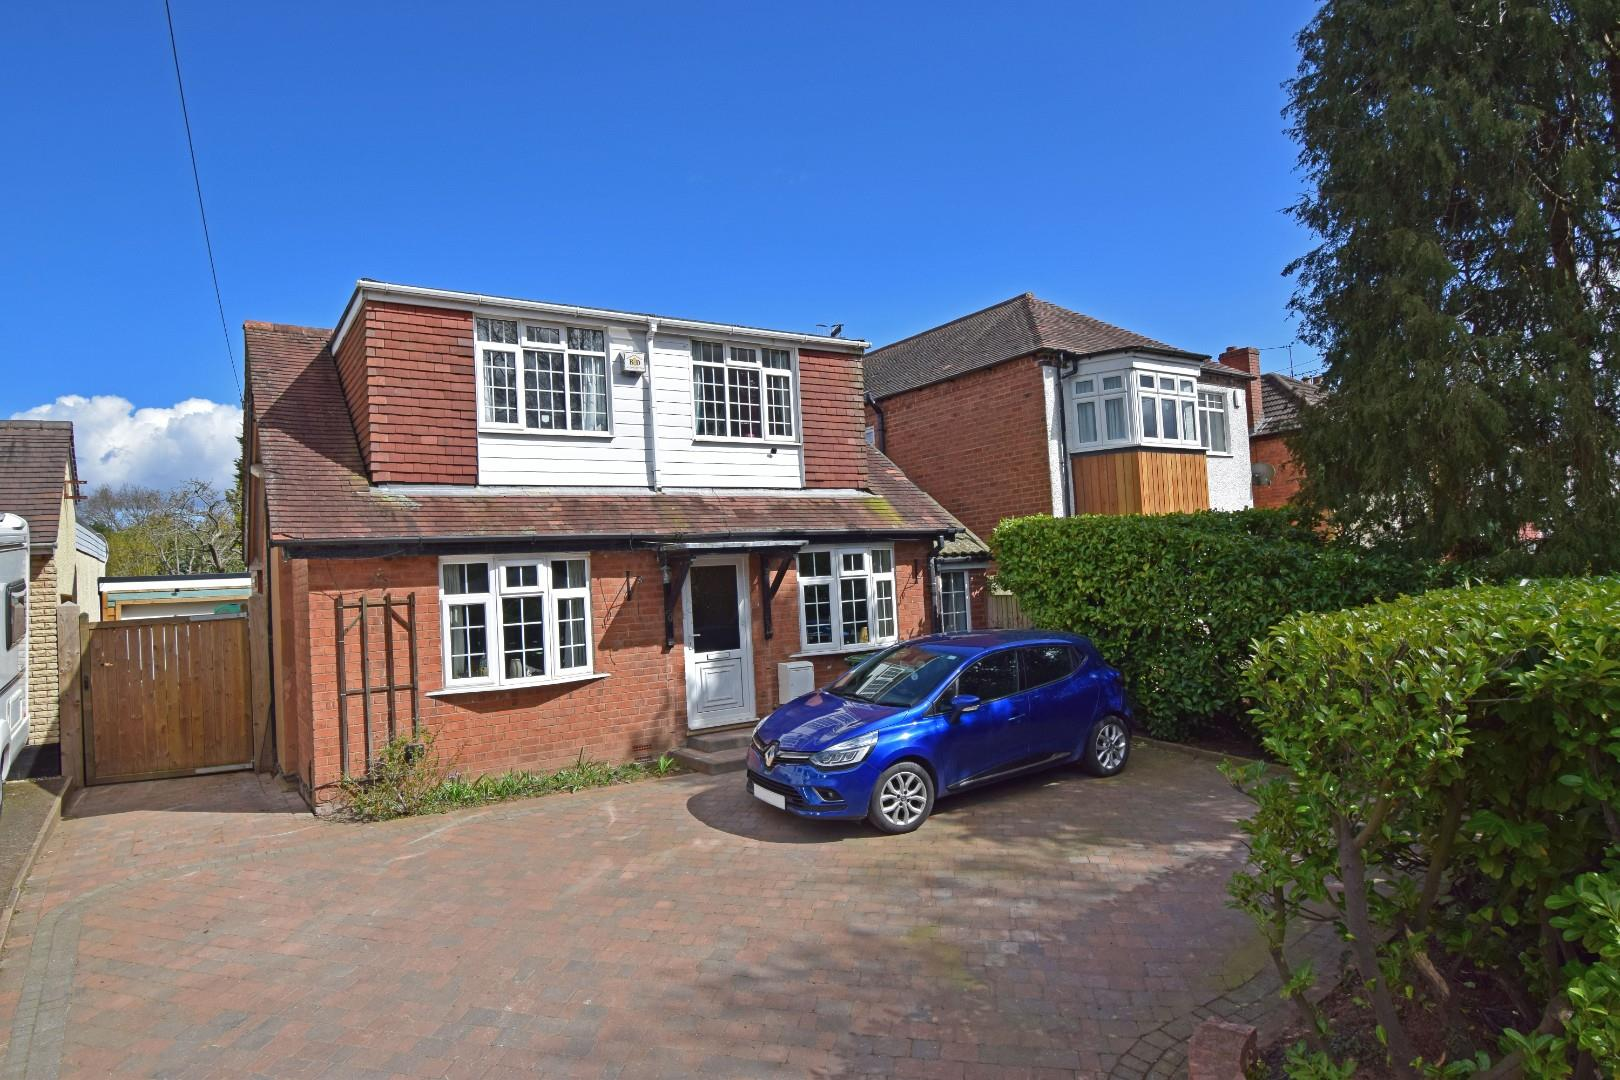 9 Linehouse Lane, Marlbrook, Bromsgrove, Worcestershire, B60 1HR